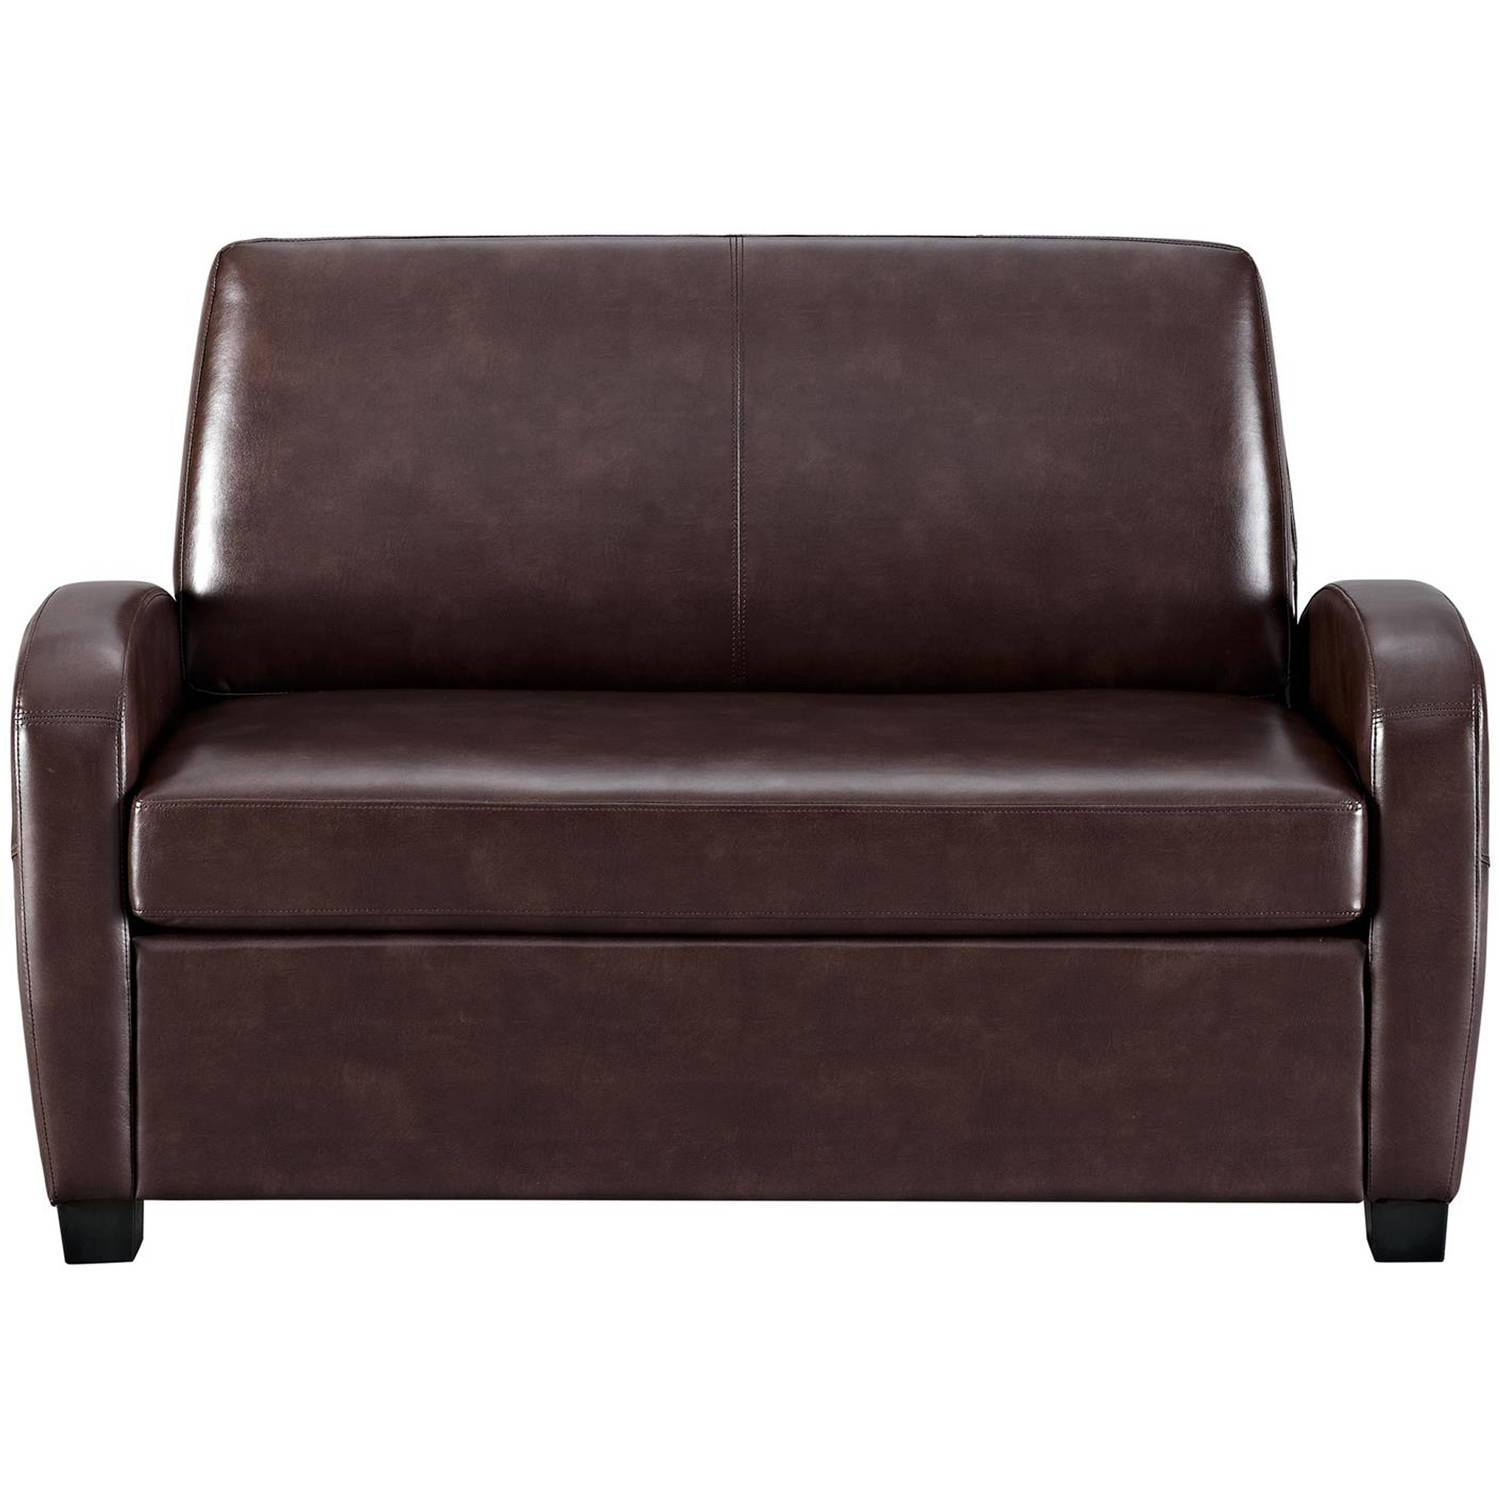 Faux Leather Sleeper Sofa Queen | Centerfieldbar throughout Faux Leather Sleeper Sofas (Image 7 of 15)